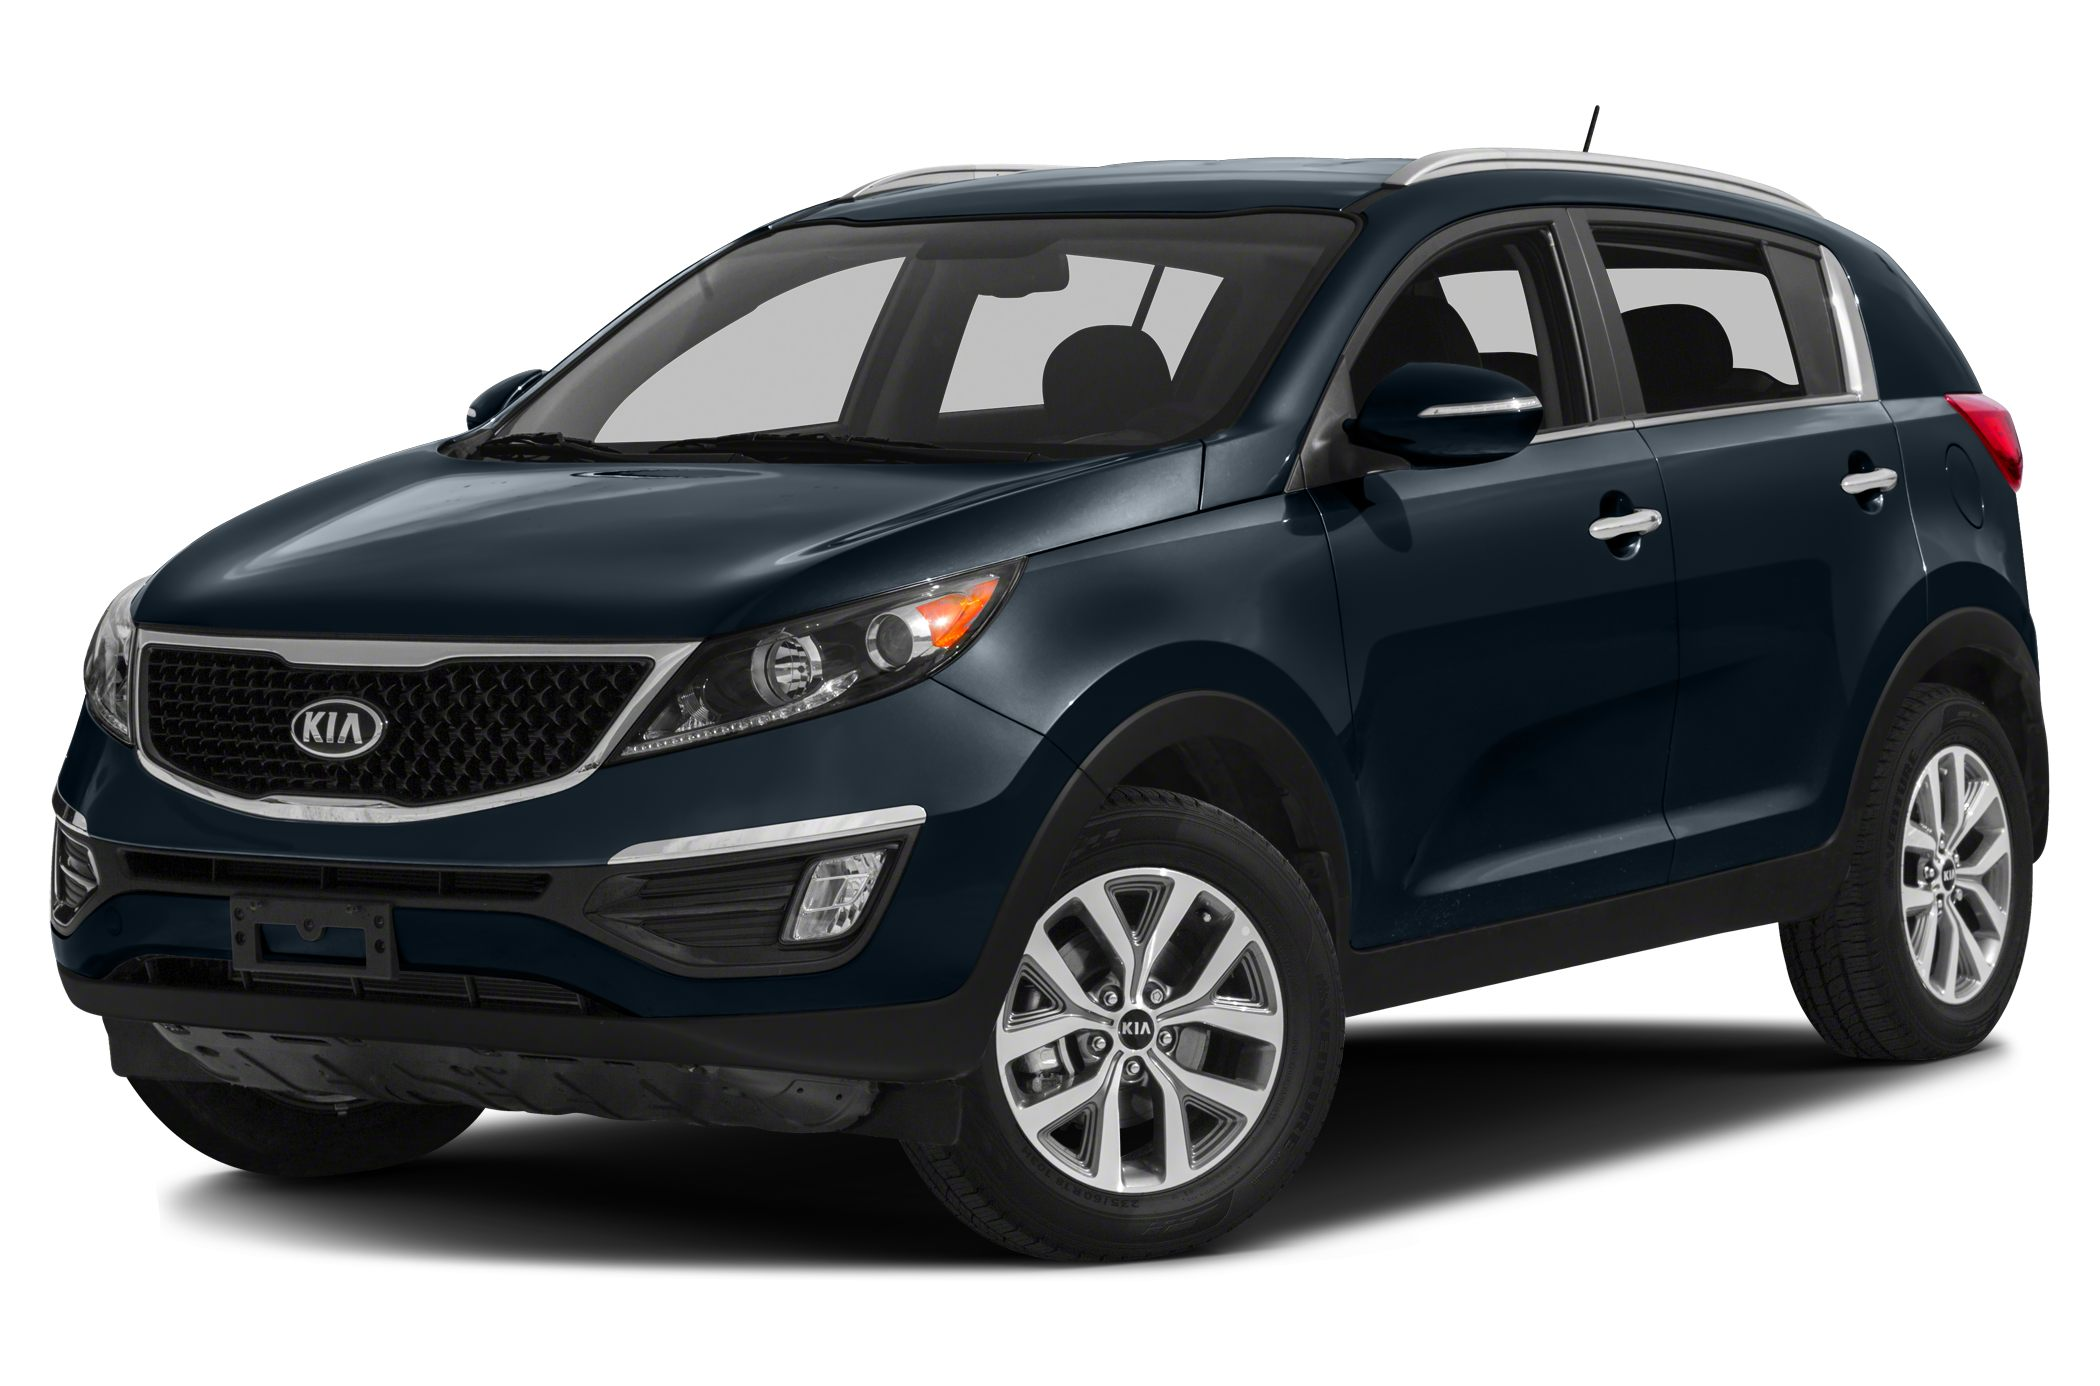 2014 Kia Sportage LX SUV for sale in Alachua for $17,868 with 27,043 miles